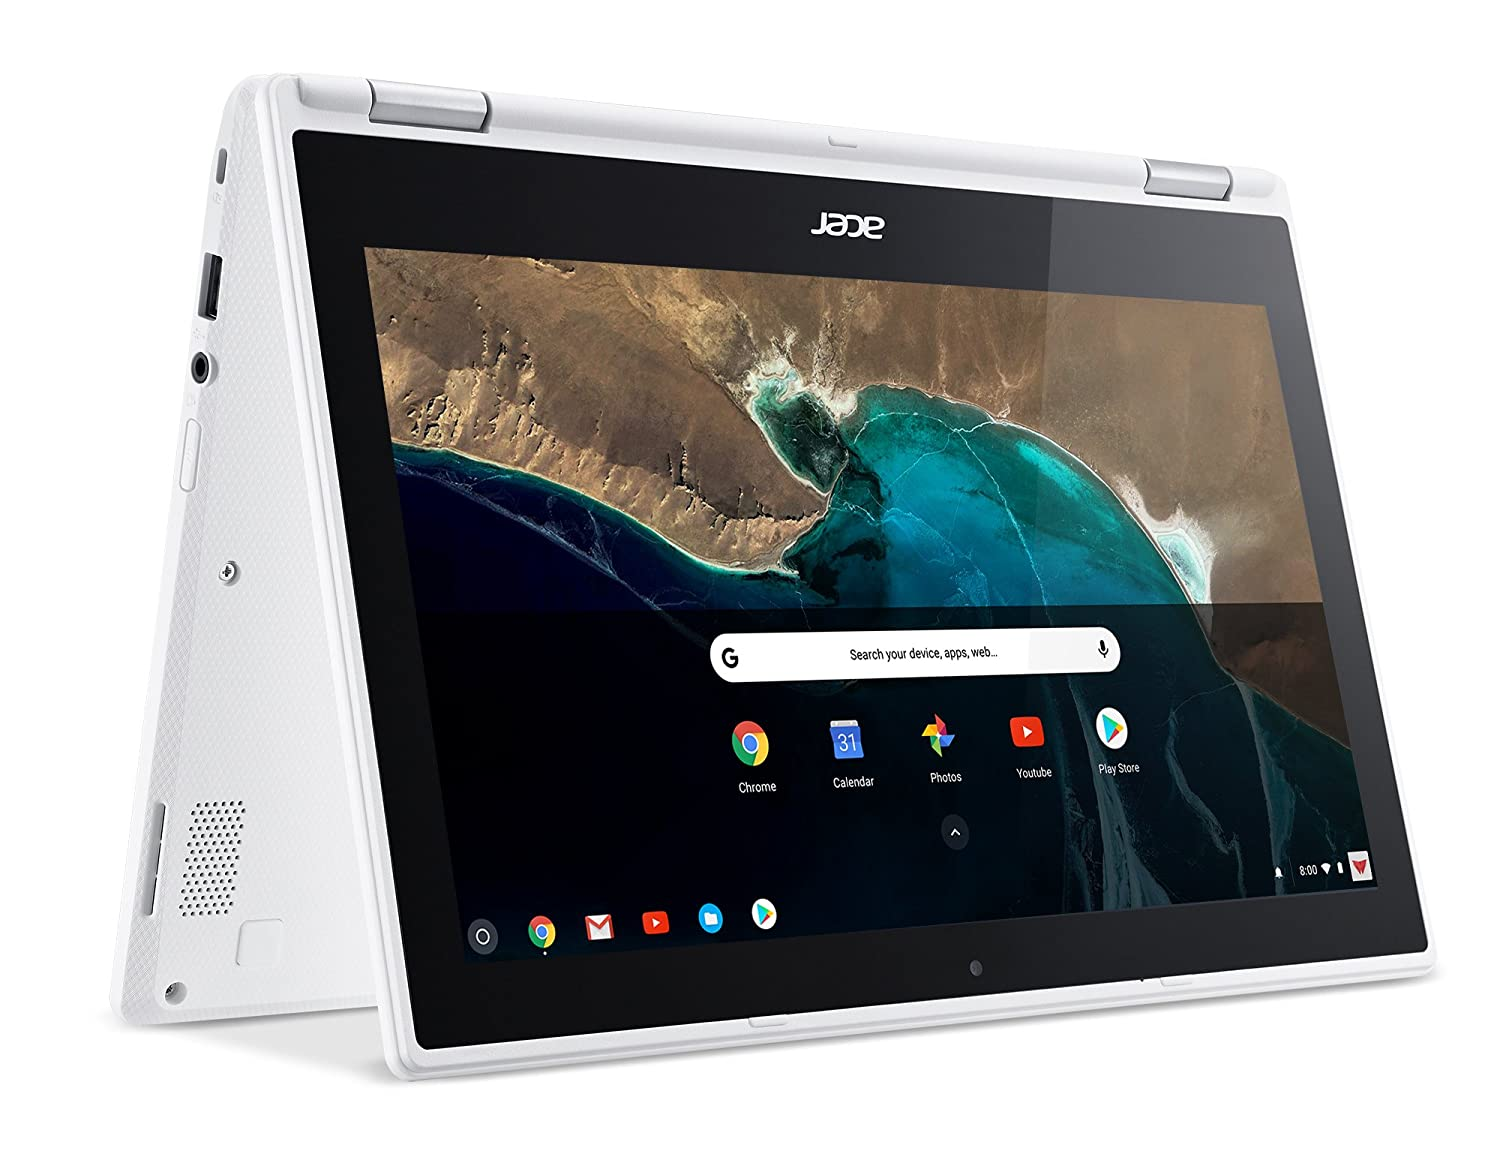 Acer Chromebook R11 CB5 132T C1LK Laptop - Intel Celeron N3150, 11.6 Inch, 32 GB, 4 GB